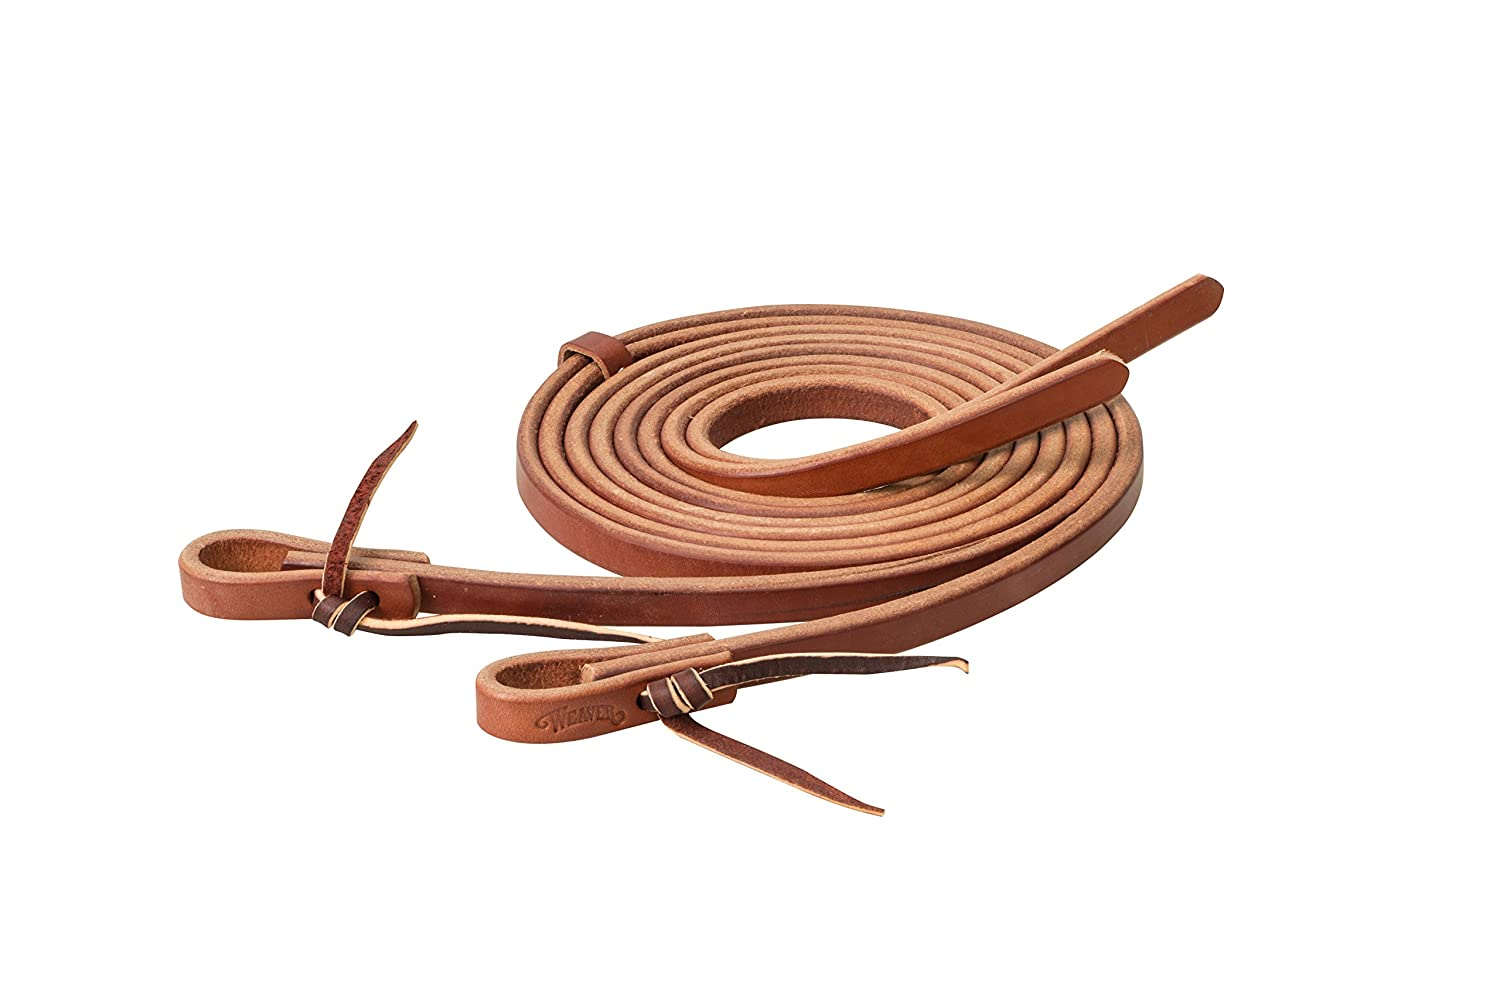 Weaver Leather Canyon pink Extra Heavy Harness Split Reins 50-1440, Canyon pink, 5 8  x 7'